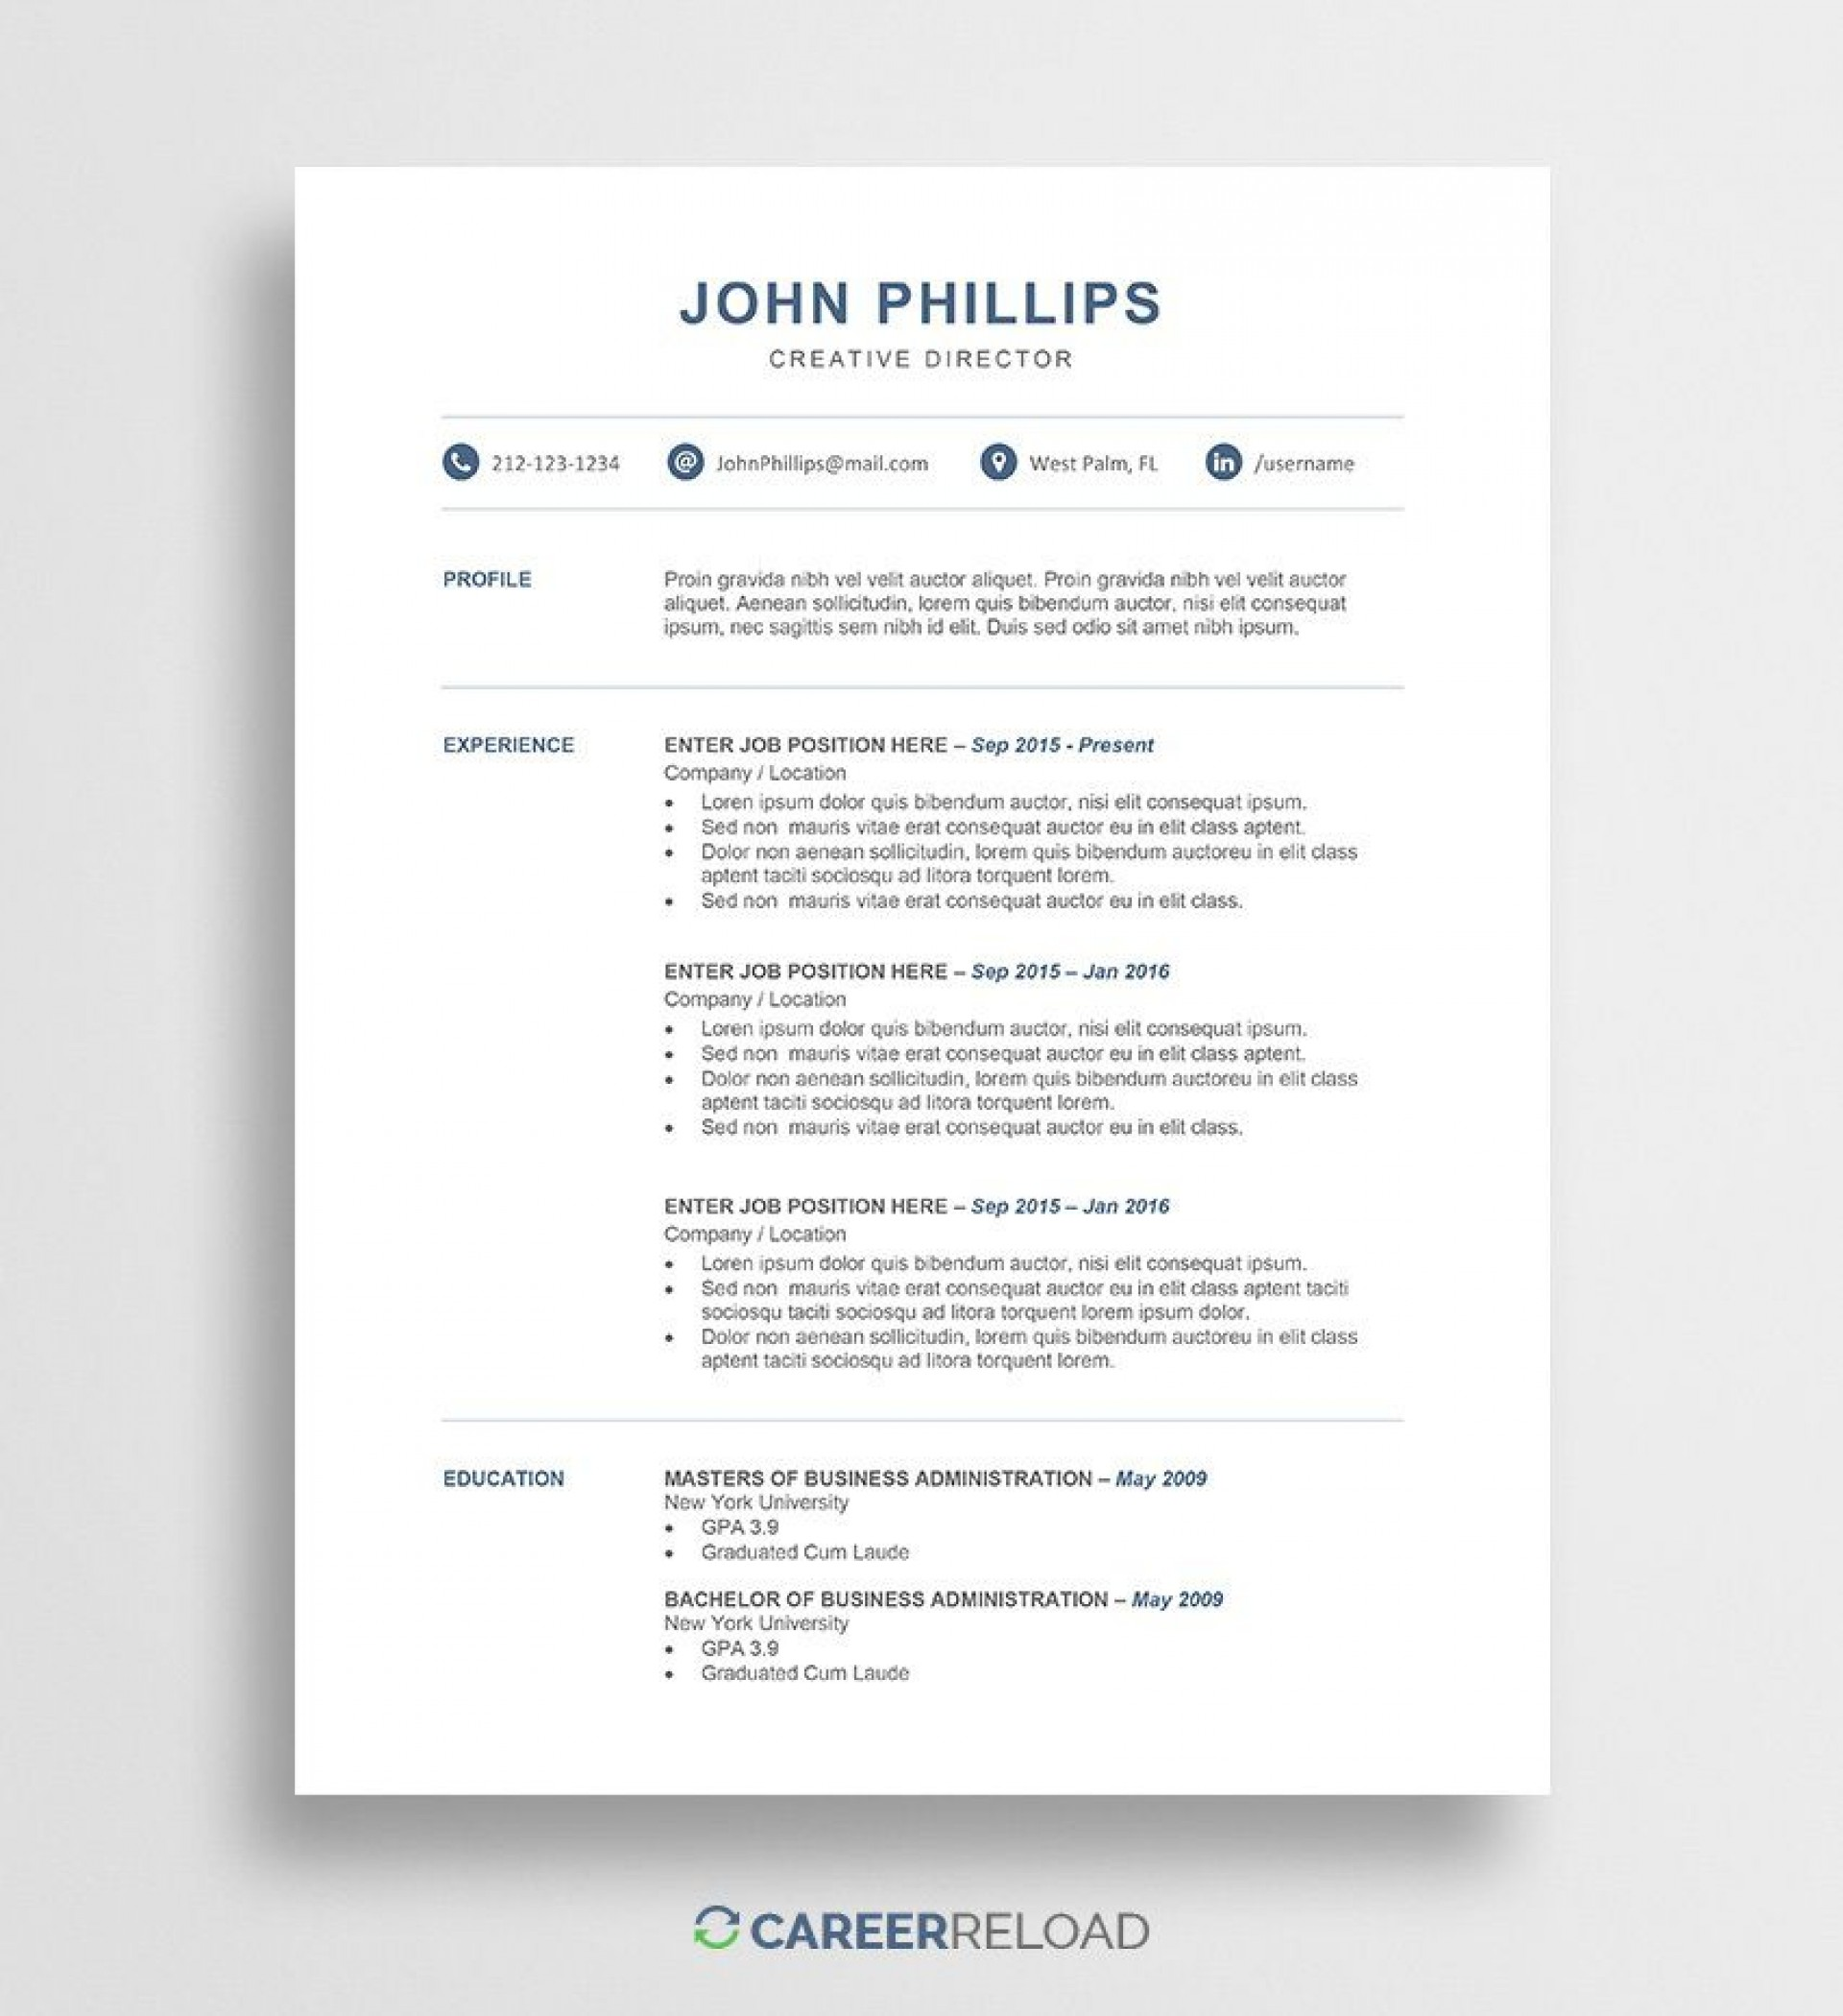 009 Fascinating Free Resume Template Microsoft Word Highest Quality  2007 Eye Catching Download 20101920